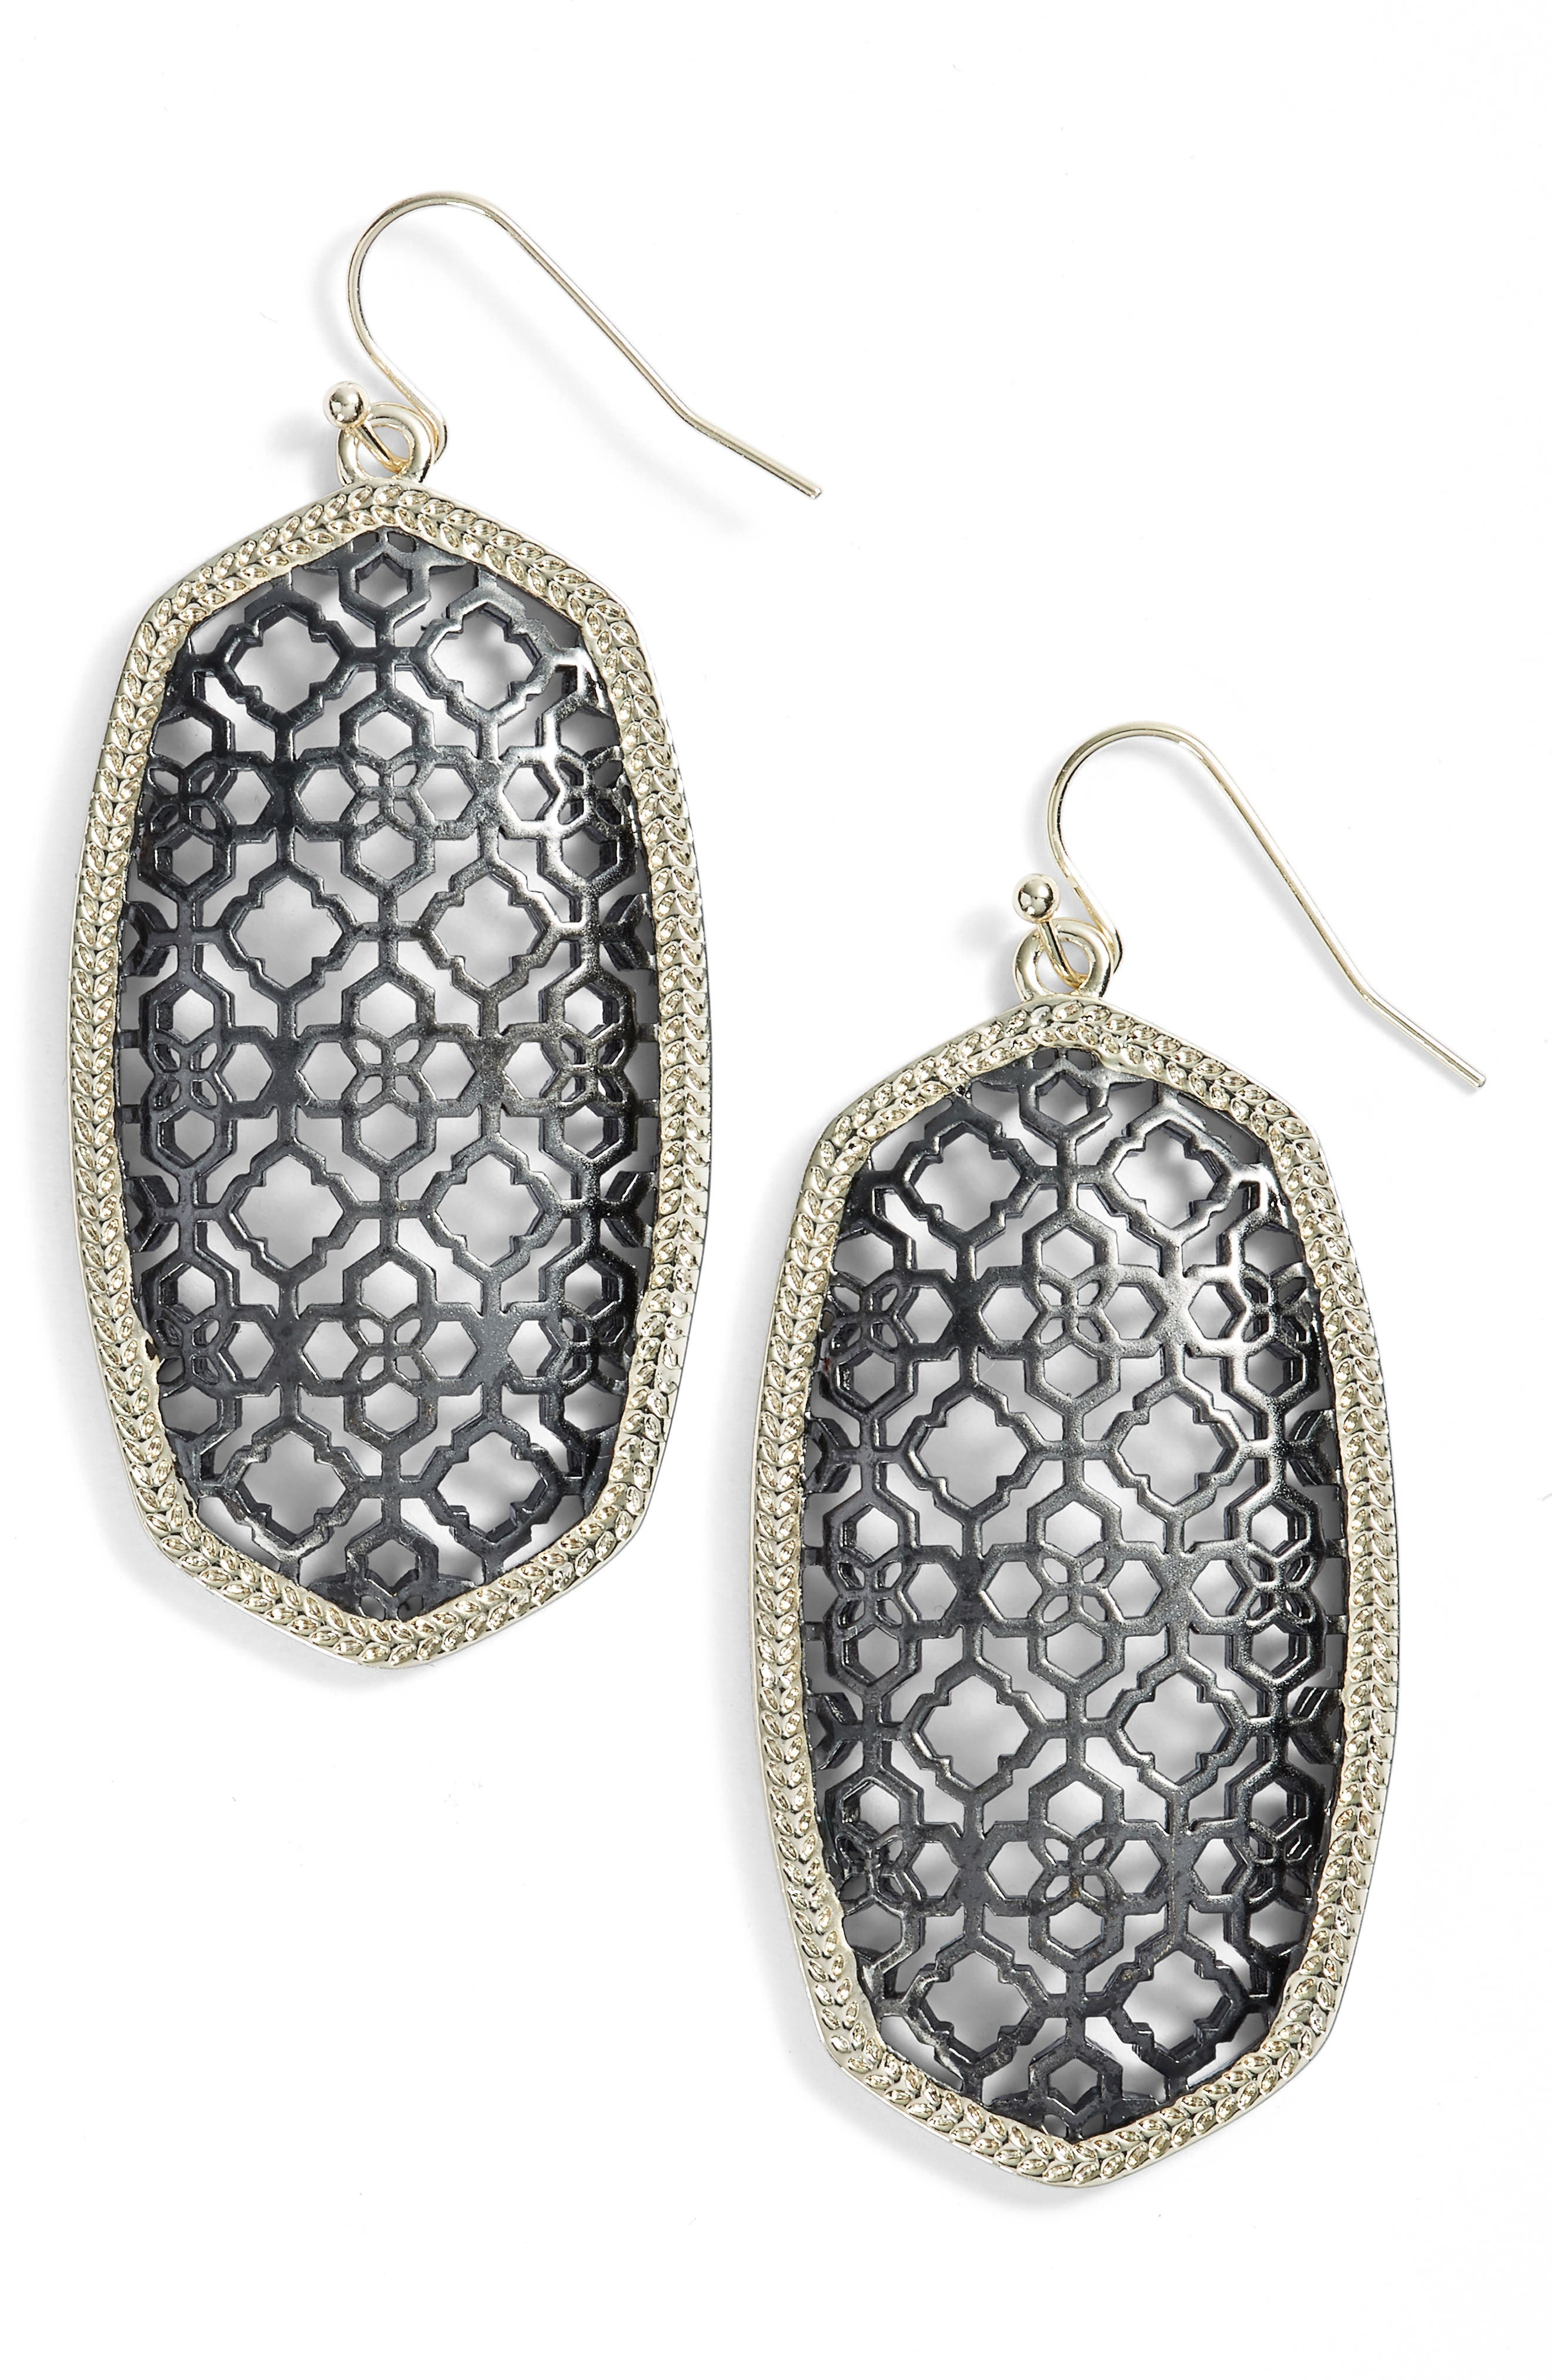 Kendra Scott Danielle Large Openwork Statement Earrings